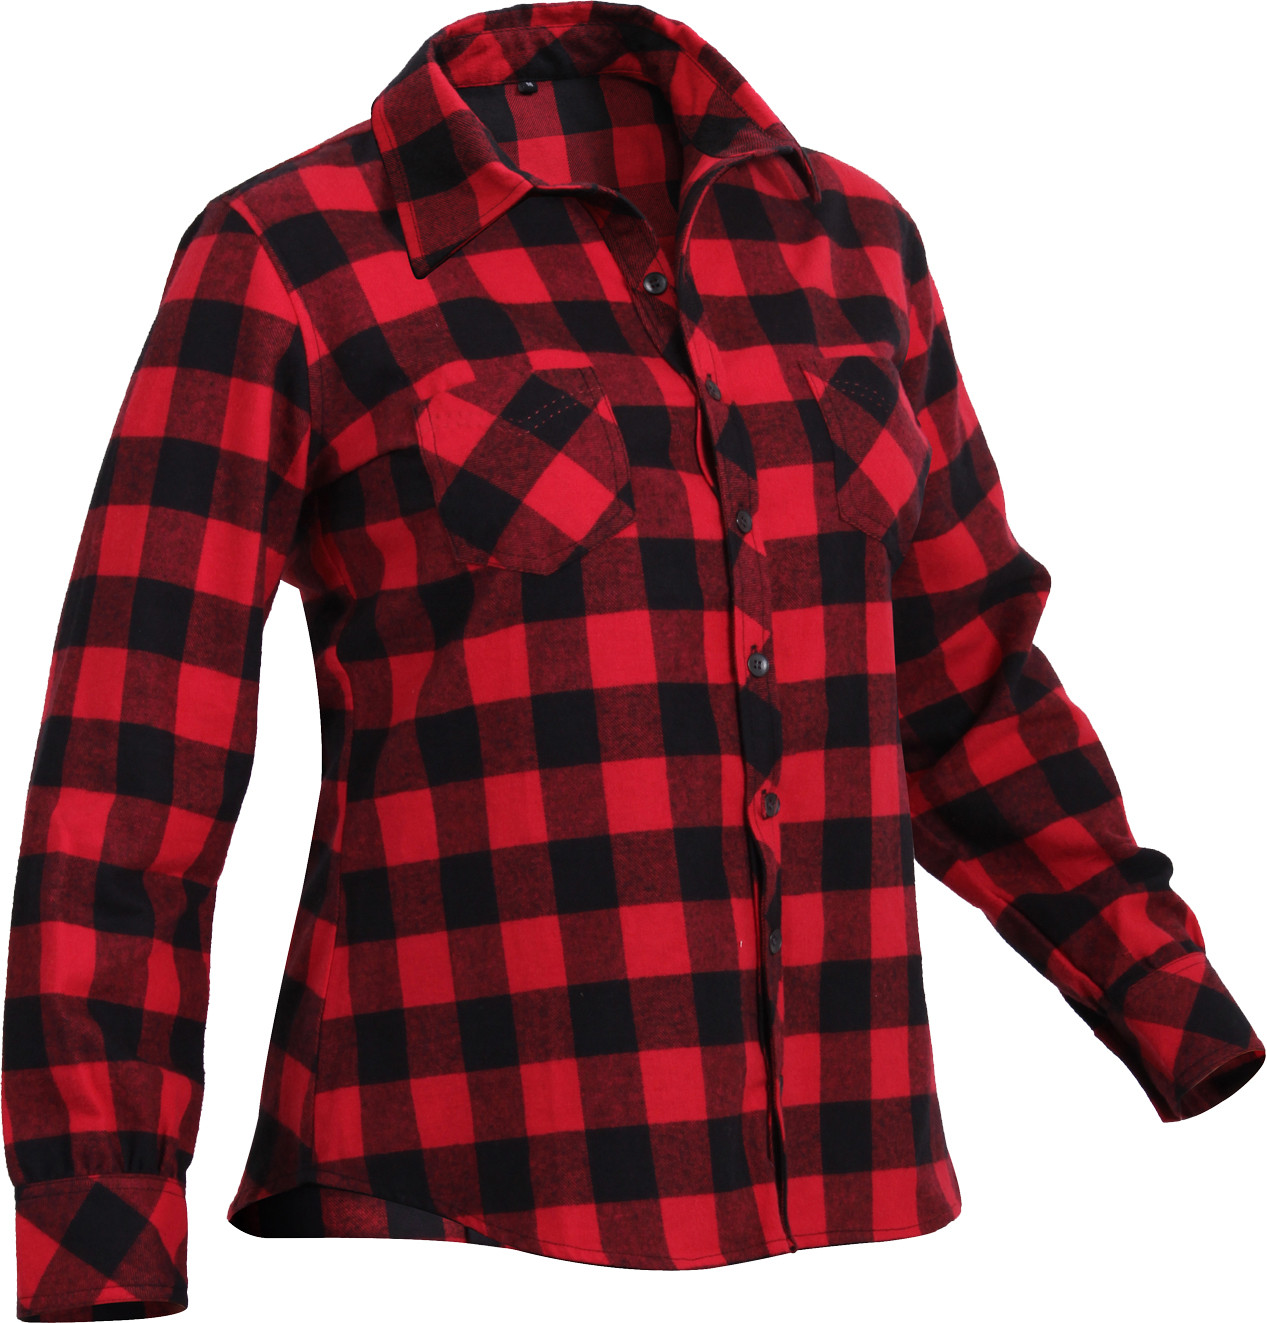 More Views. Women s Red Plaid Tapered Cut Button Down Flannel Shirt b5522fd5e7